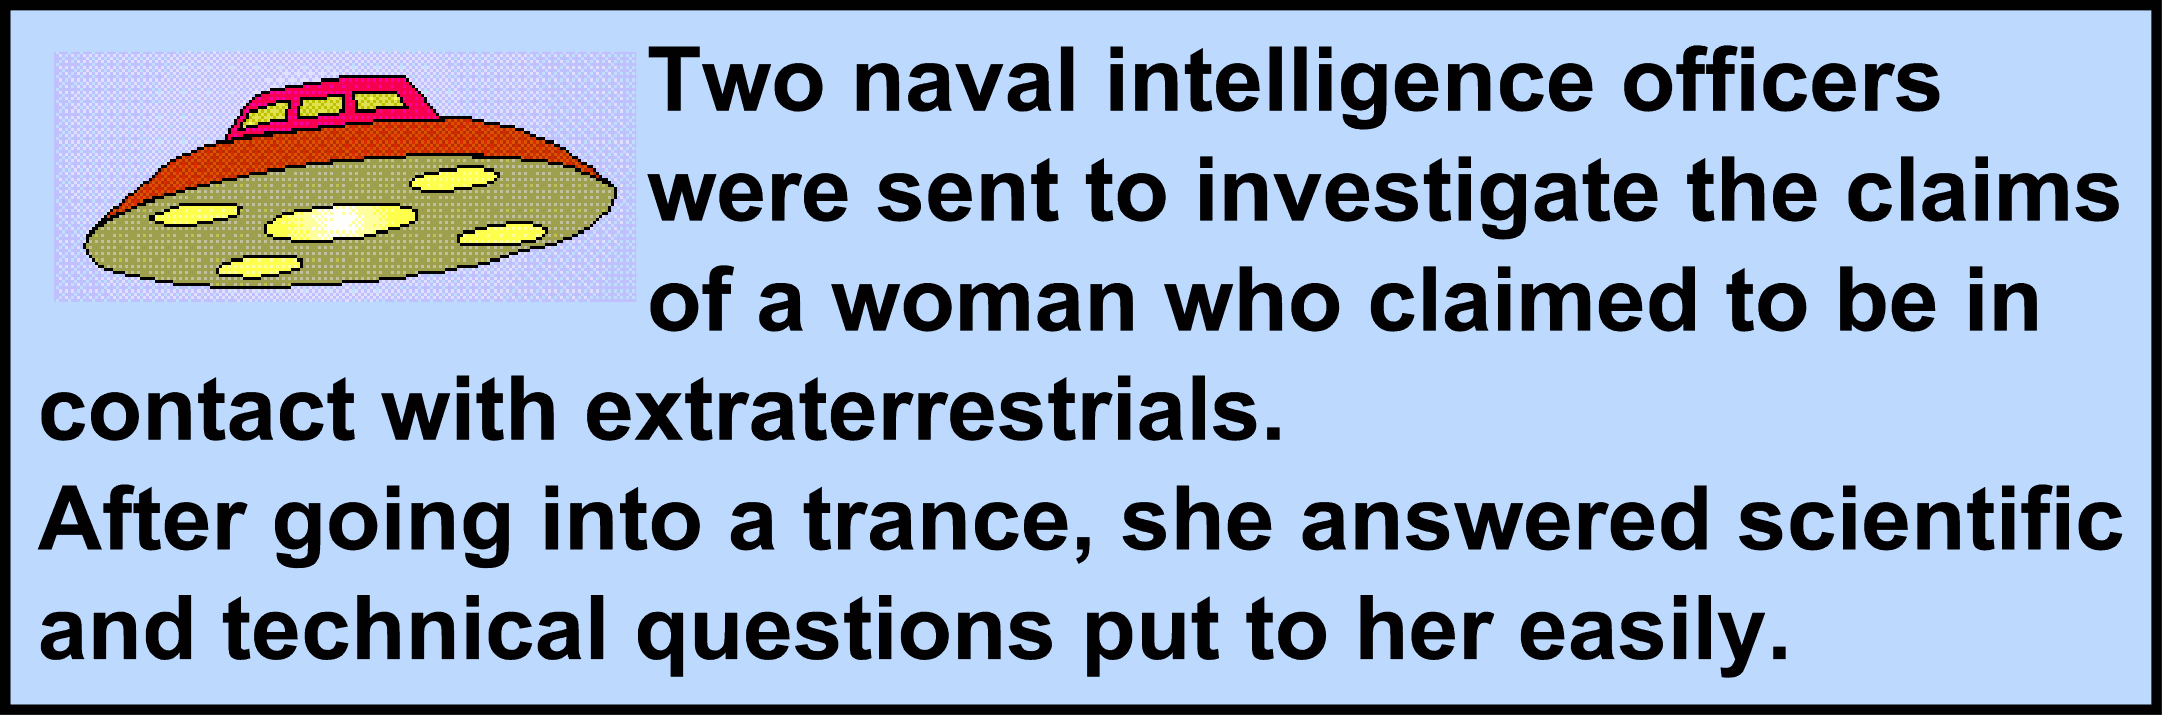 Image:Two naval intelligence officers were sent to investigate the claims of a woman who claimed to be in contact with extraterrestrials. After going into a trance, she answered scientific and technical questions put to her easily.